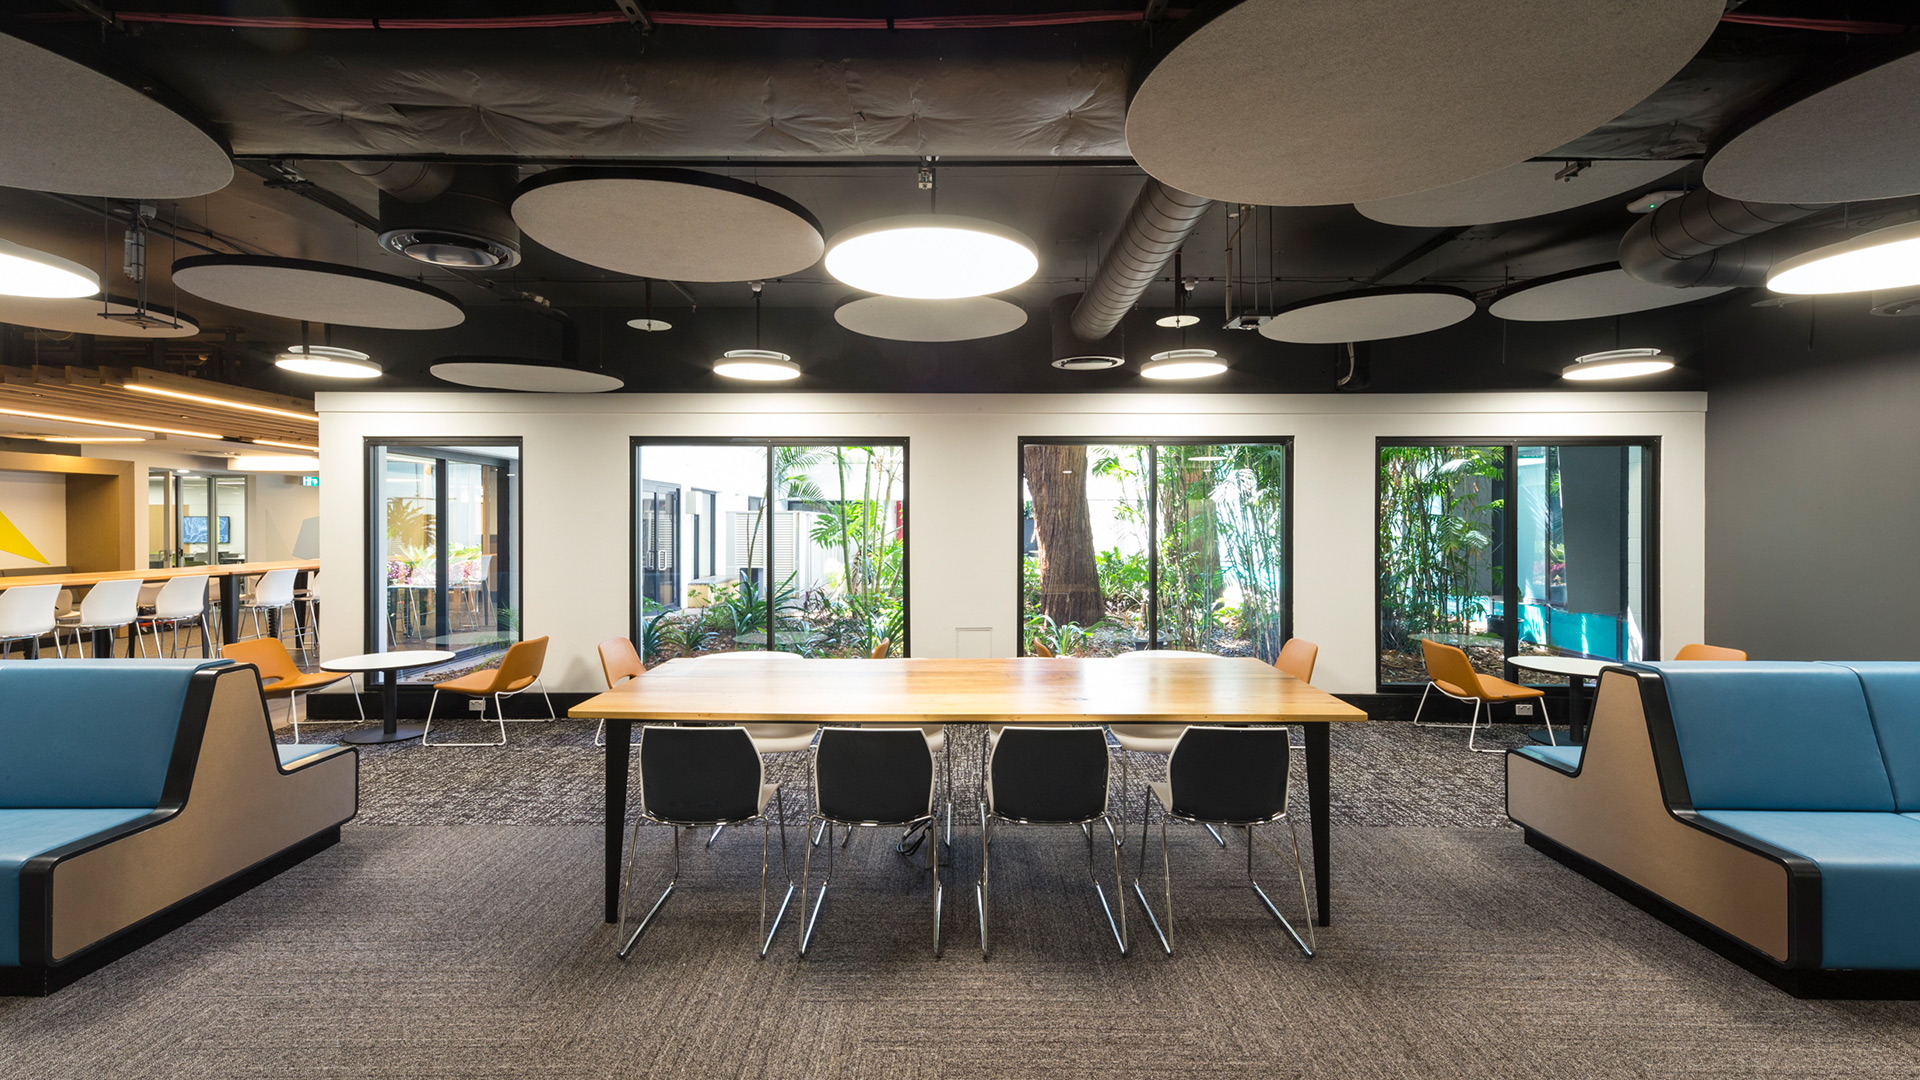 UNSW Mathews L1 CATS Student Study and Meeting Space Interior Design – Gardner Wetherill GW 2